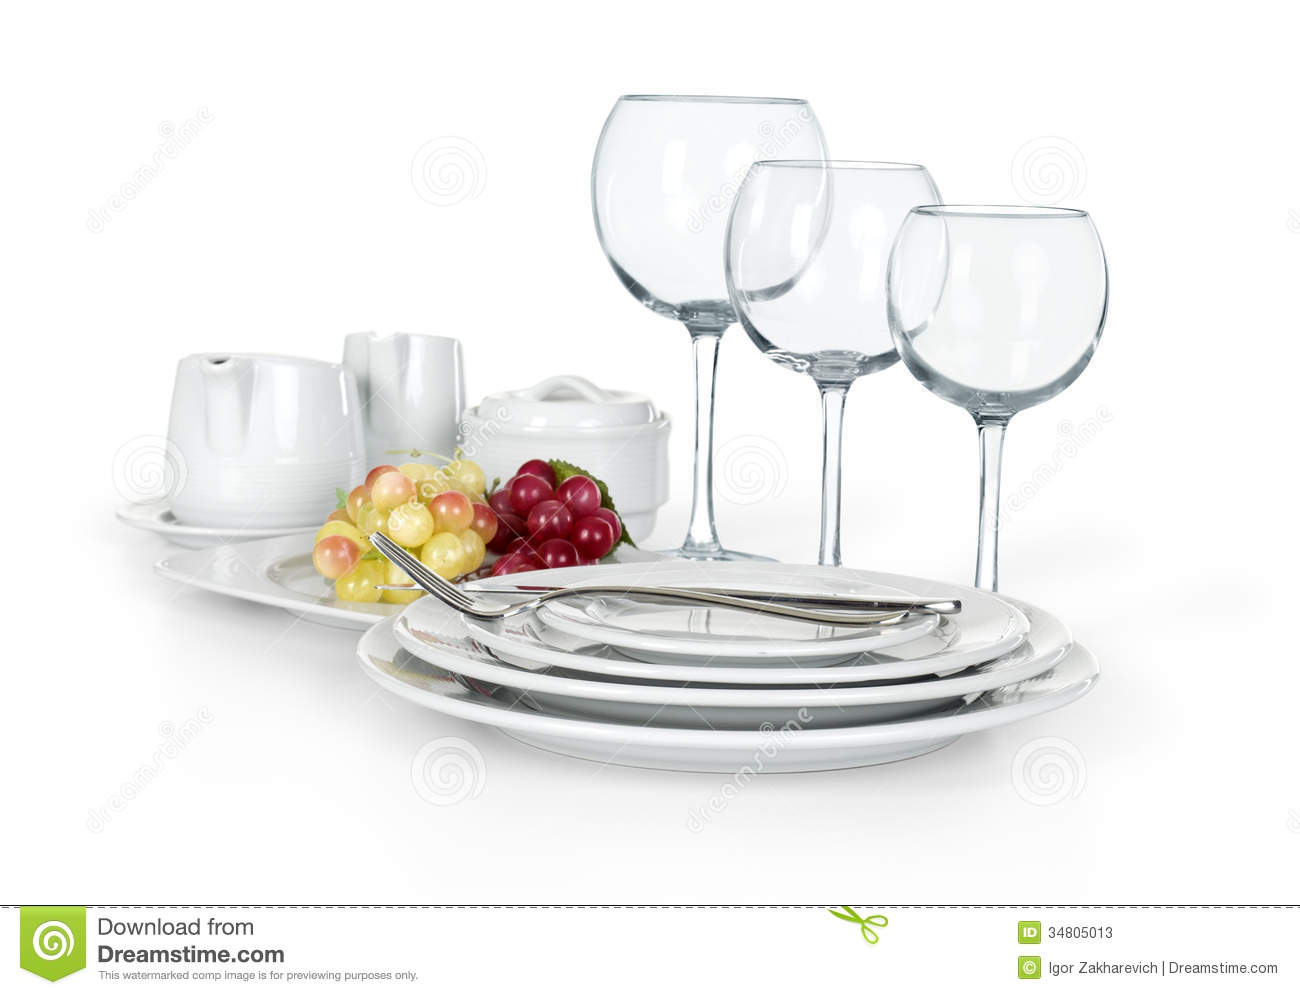 Kitchen set of cups plates and jars stock image image for Kitchen set plates